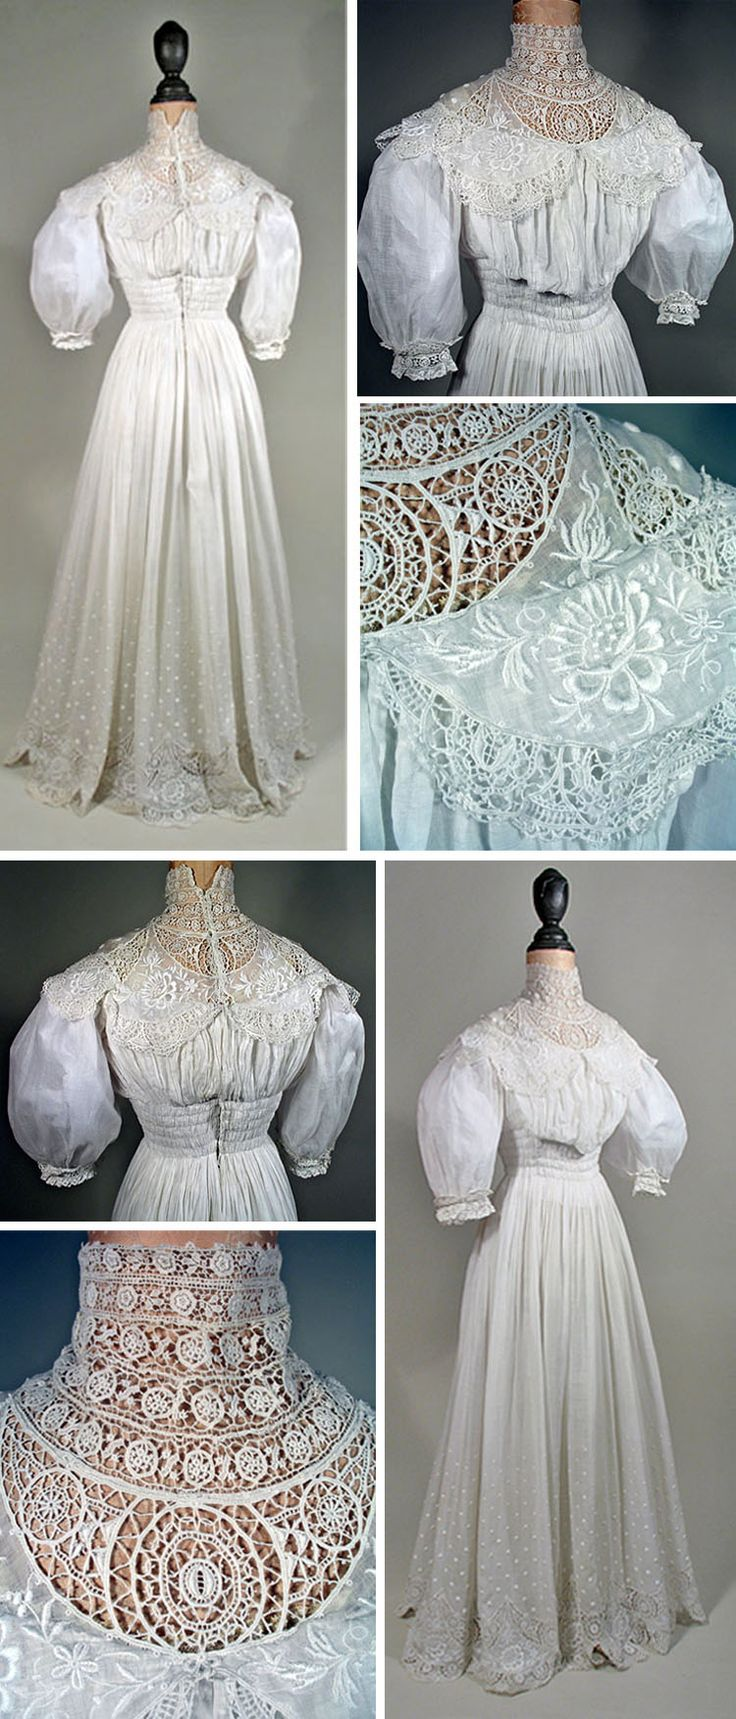 Day Dress ~ ca.1905-1906 ~ White cotton with machine lace. Full skirt, smocking at waist, high collar, soft bodice, & elbow-length puffed sleeves. Cut without waist seam; fitting is by rows of ruching. Lower skirt has machine-embroidered white dots as well as lace. Interior bodice is white cotton; dress hooks in back.